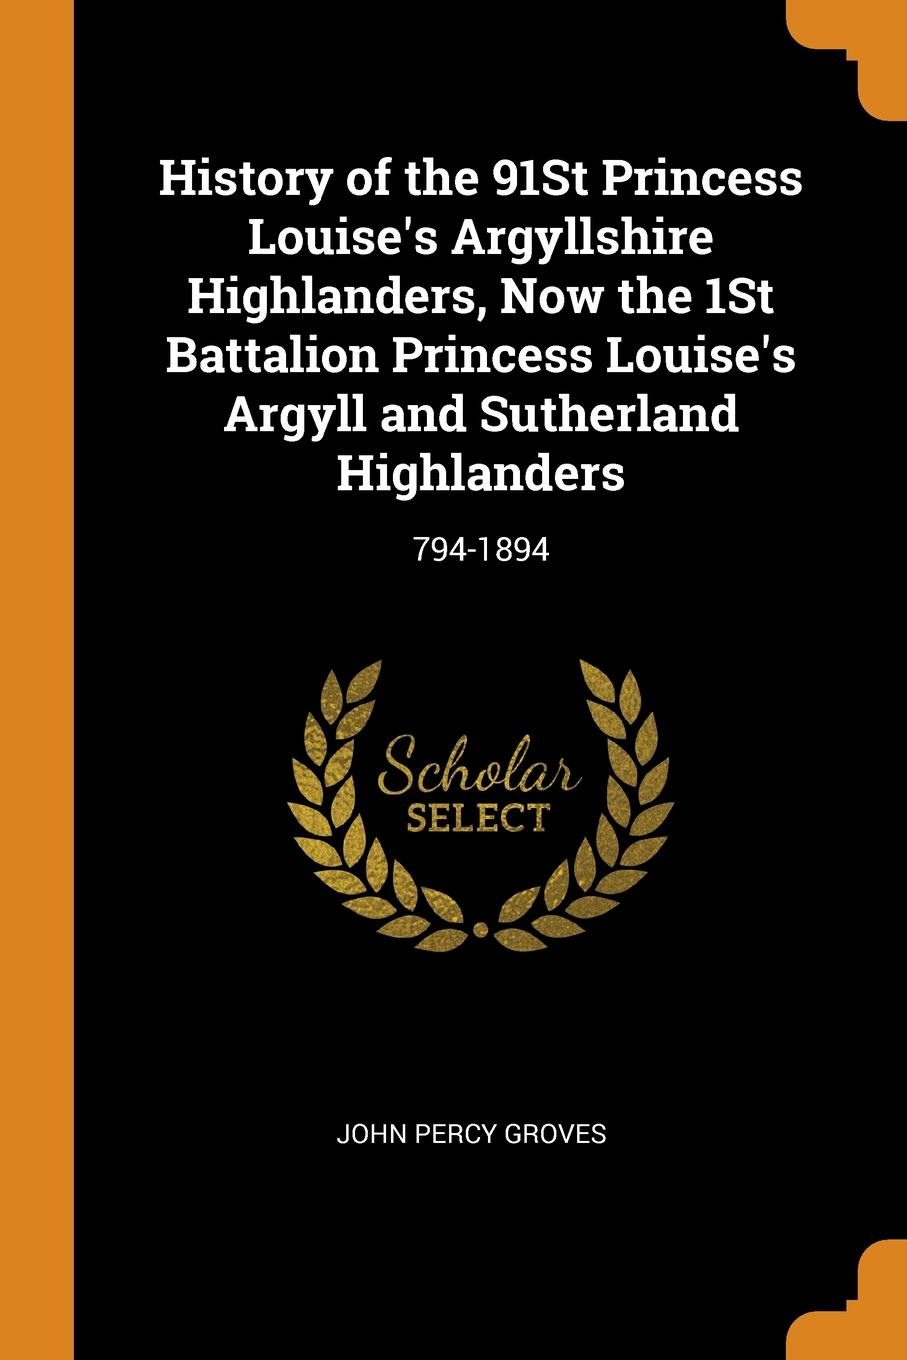 History of the 91St Princess Louise.s Argyllshire Highlanders, Now the 1St Battalion Princess Louise.s Argyll and Sutherland Highlanders. 794-1894